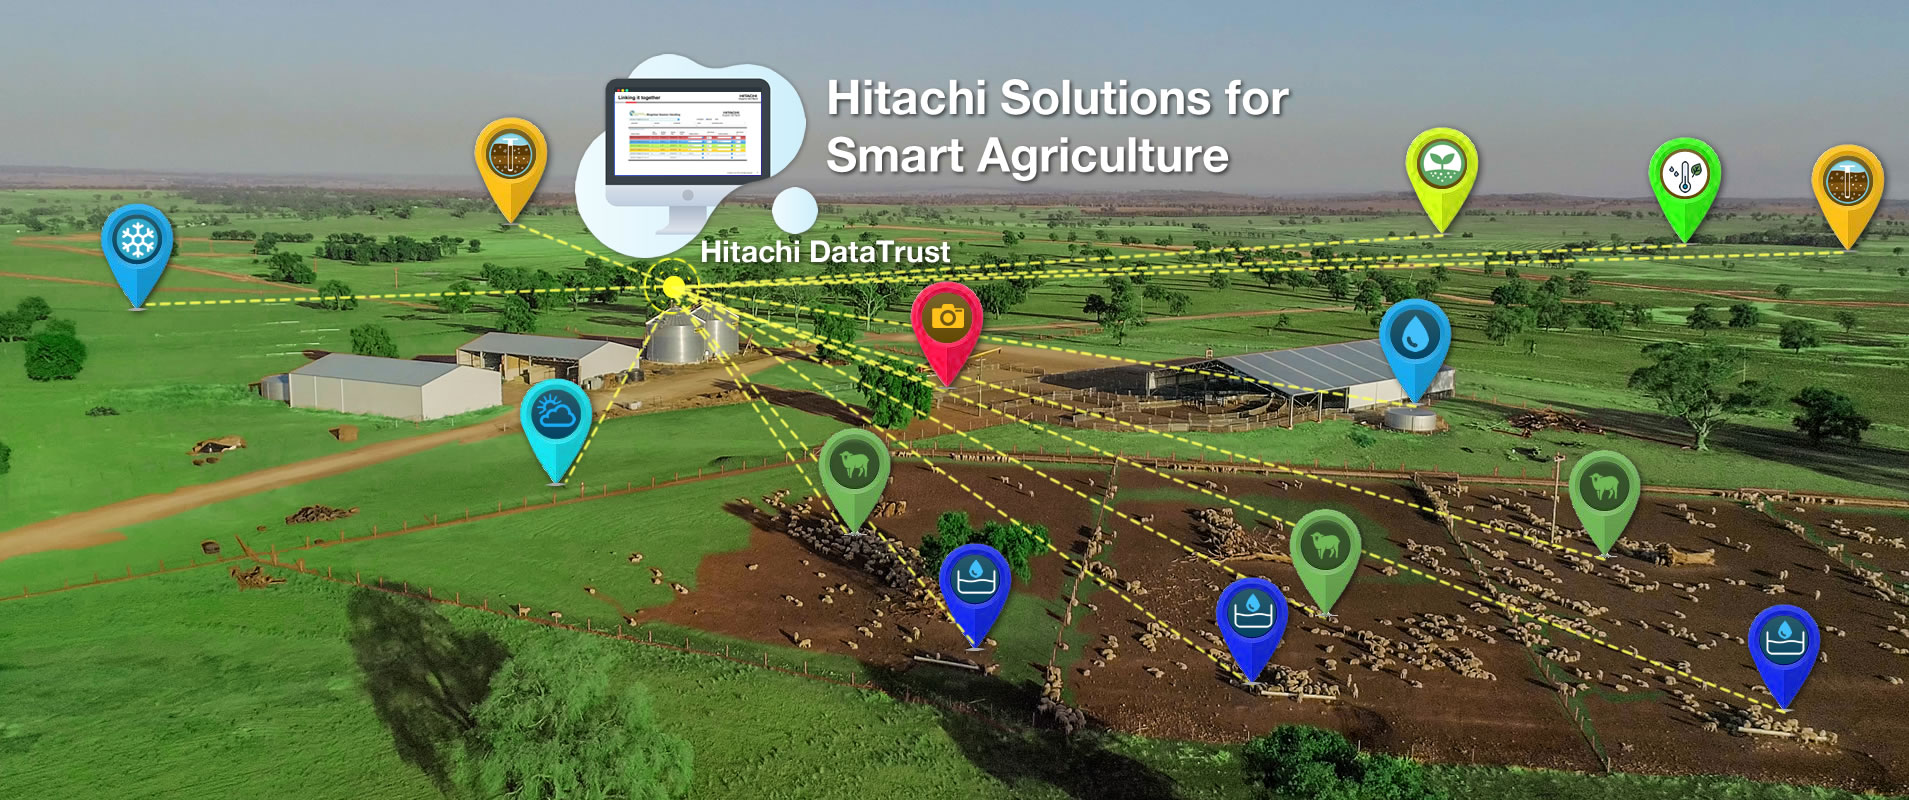 View Hitachi Smart Solutions for Agriculture